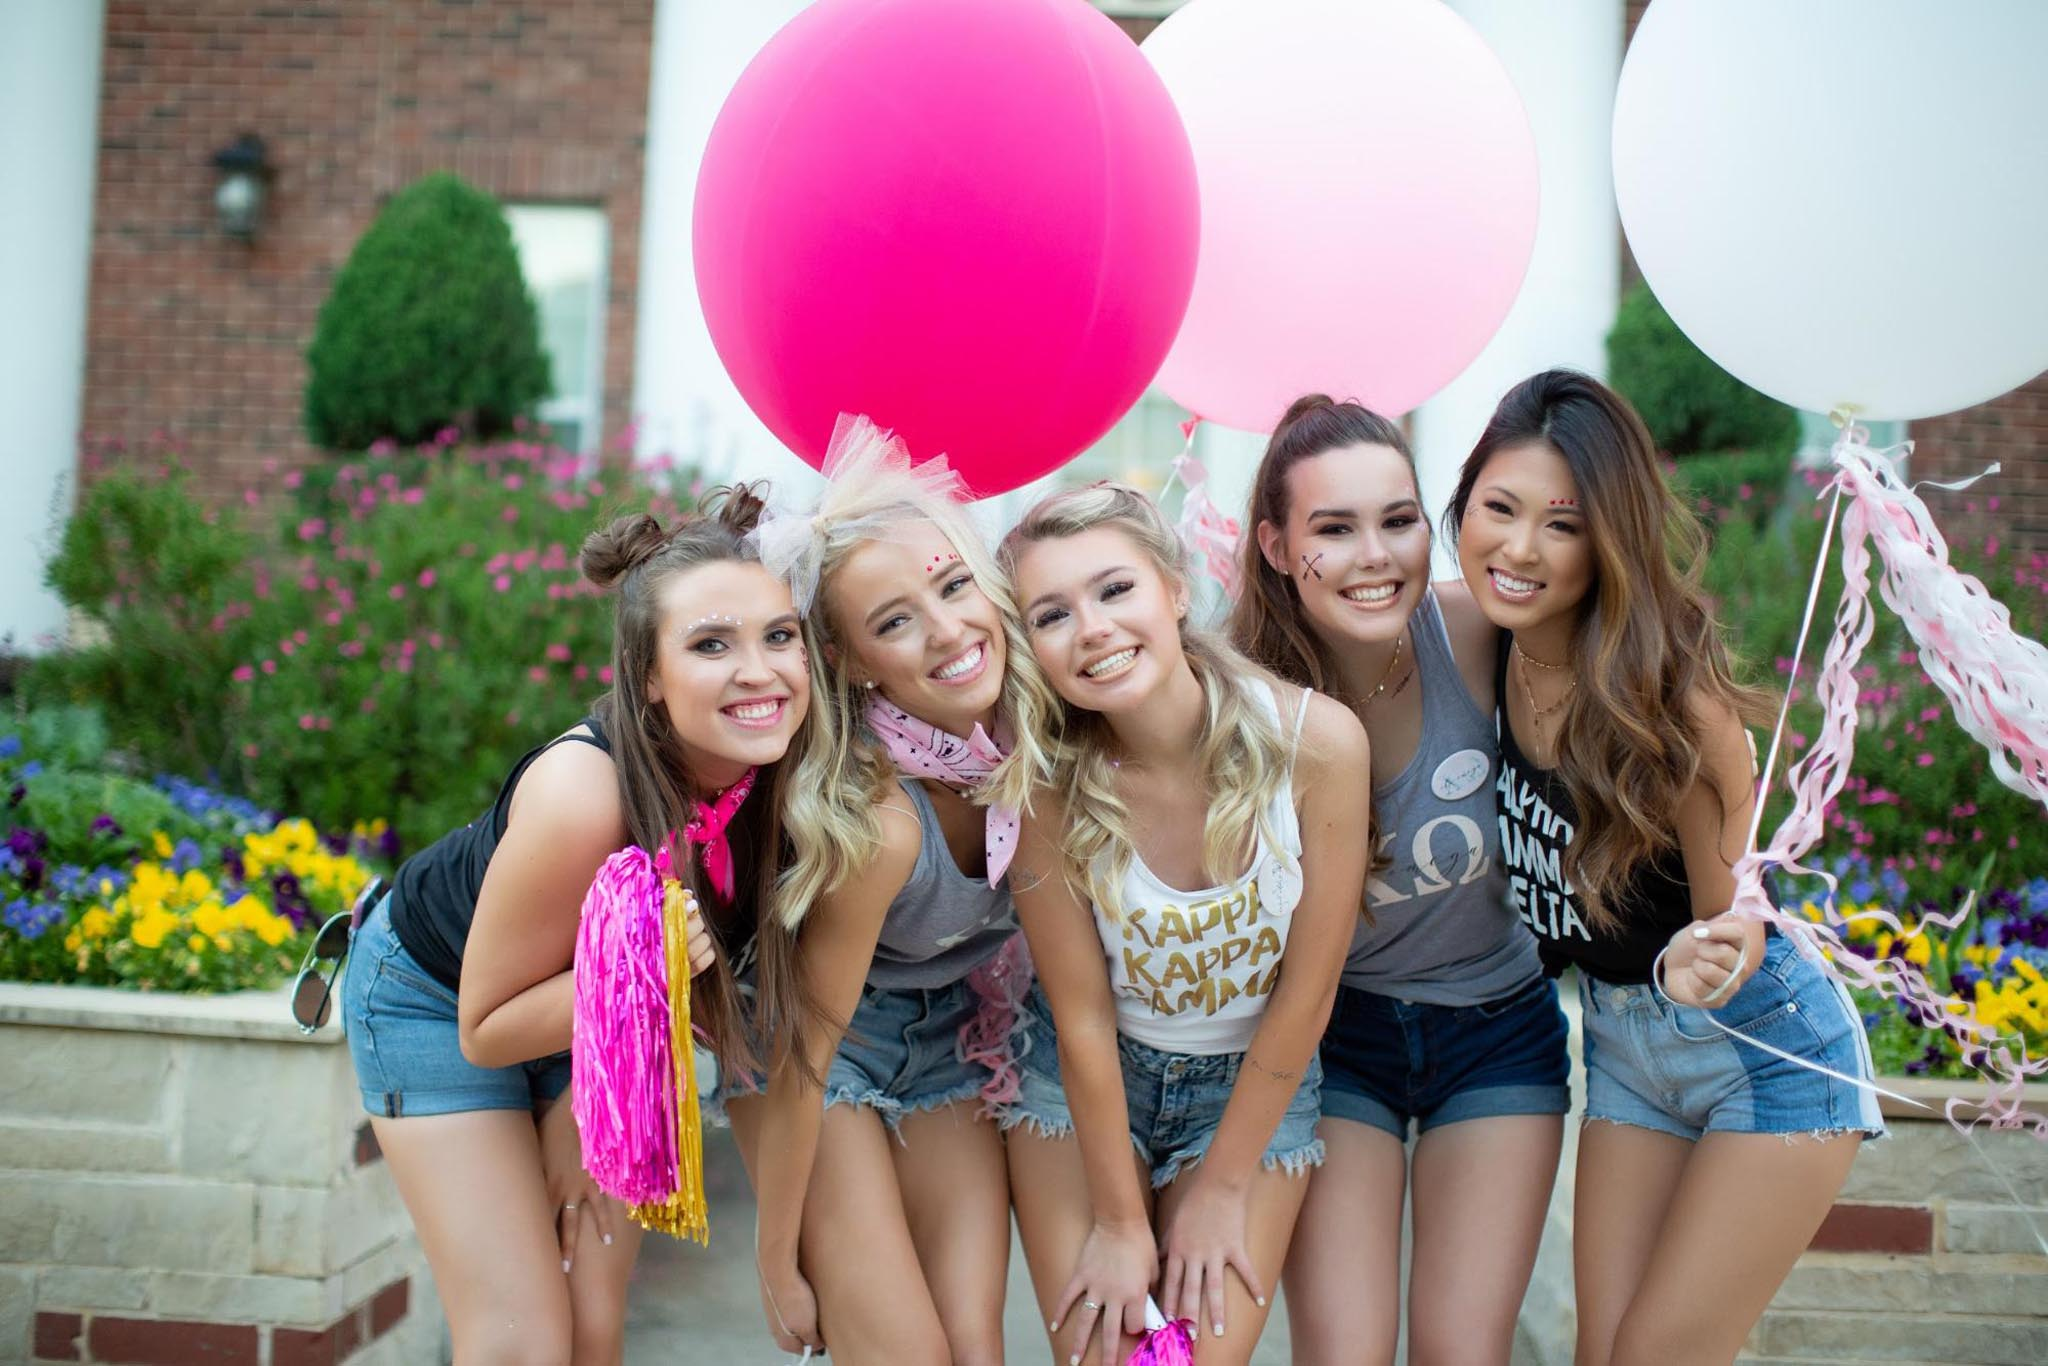 Sorority girls posing together holding large colorful balloons